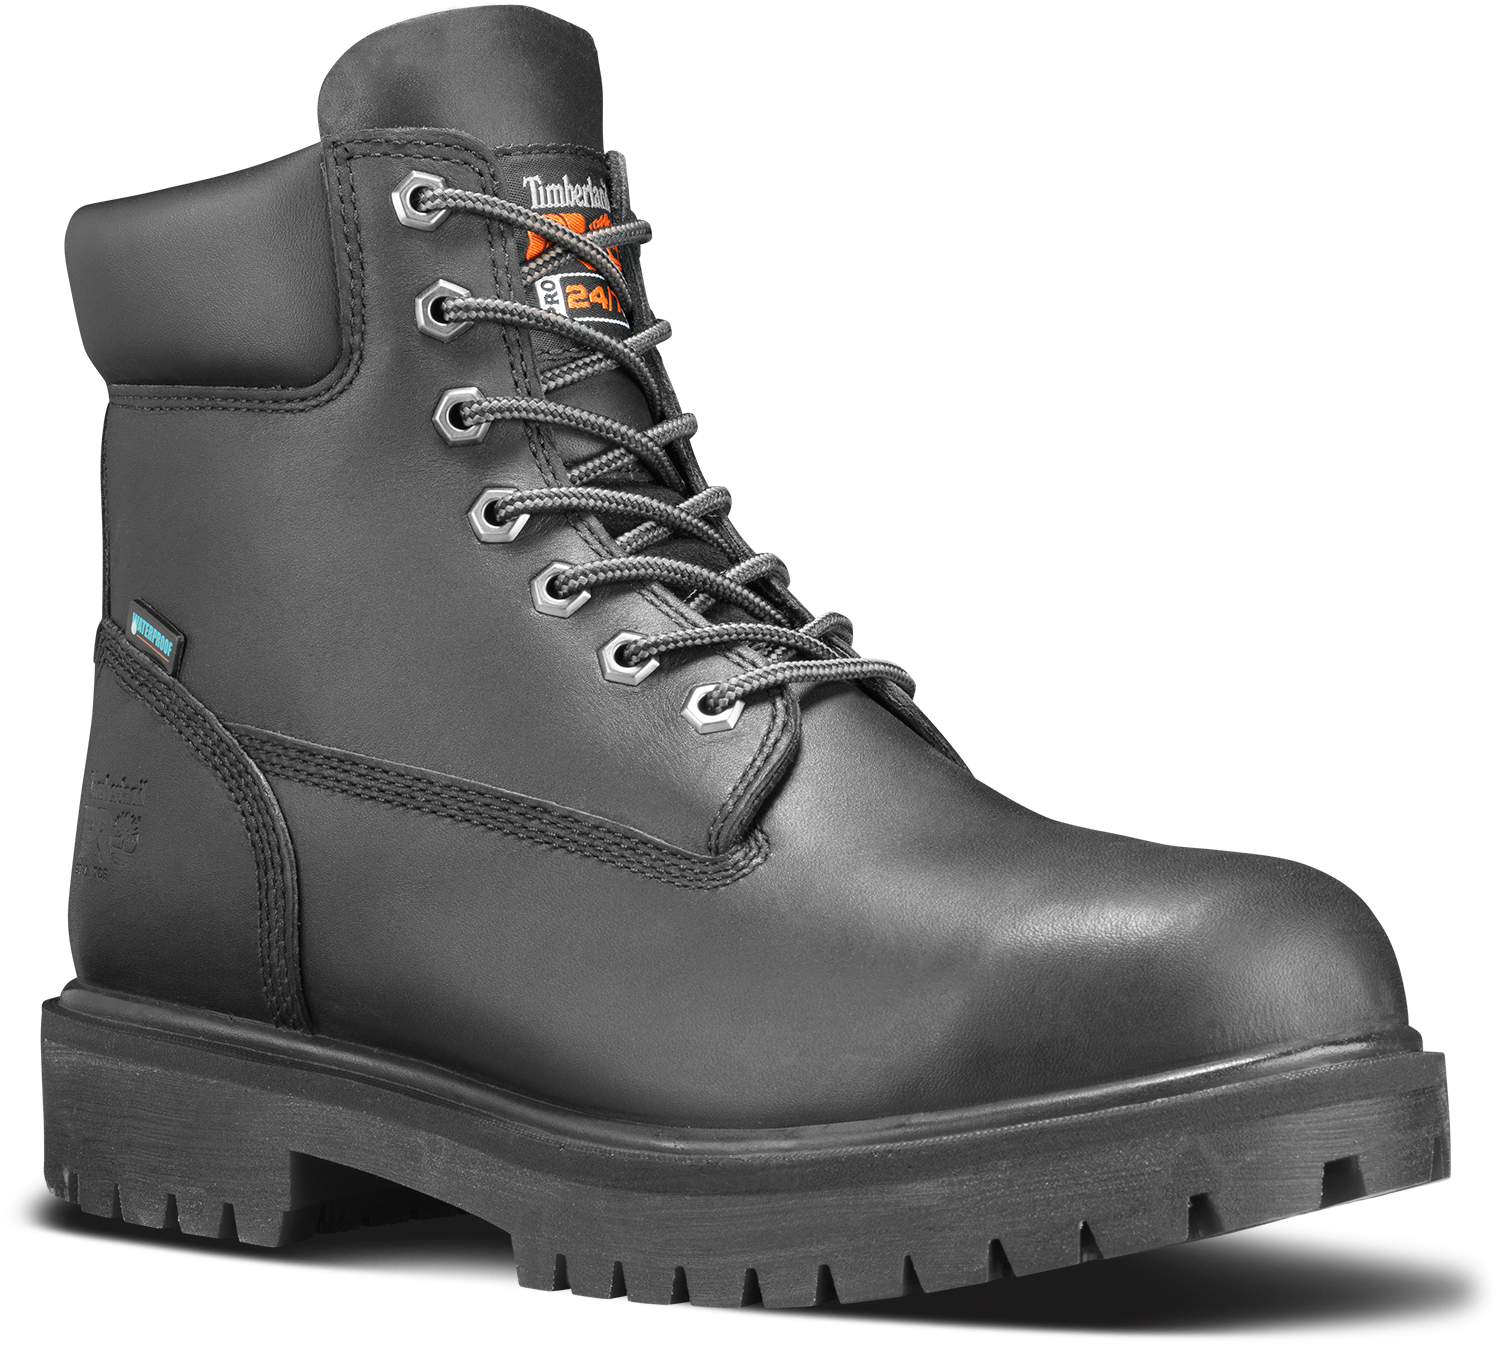 Work Boots for Men Waterproof Soft Toe Safety Working Shoes Oil//Slip Resistant